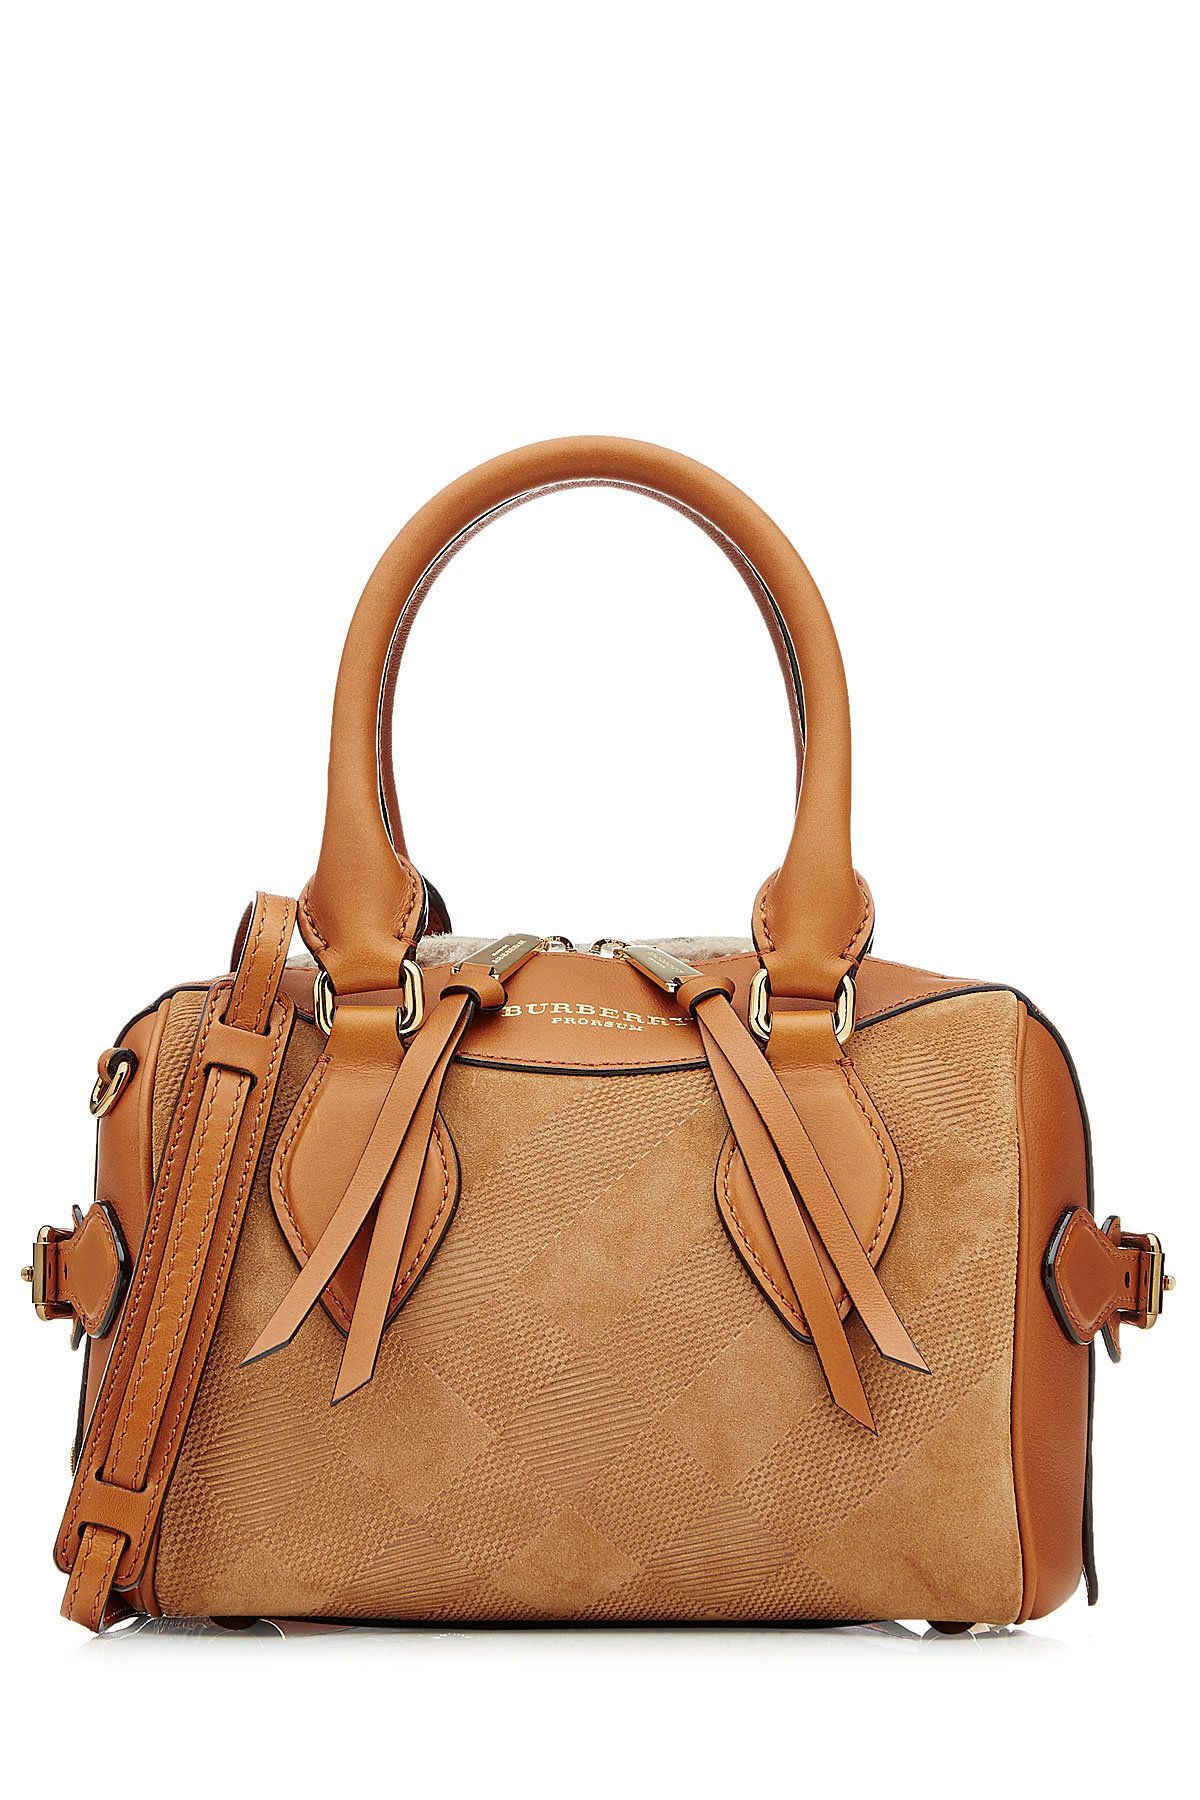 a6b55e29830f Burberry Leather and Suede Tote Burberry Bags